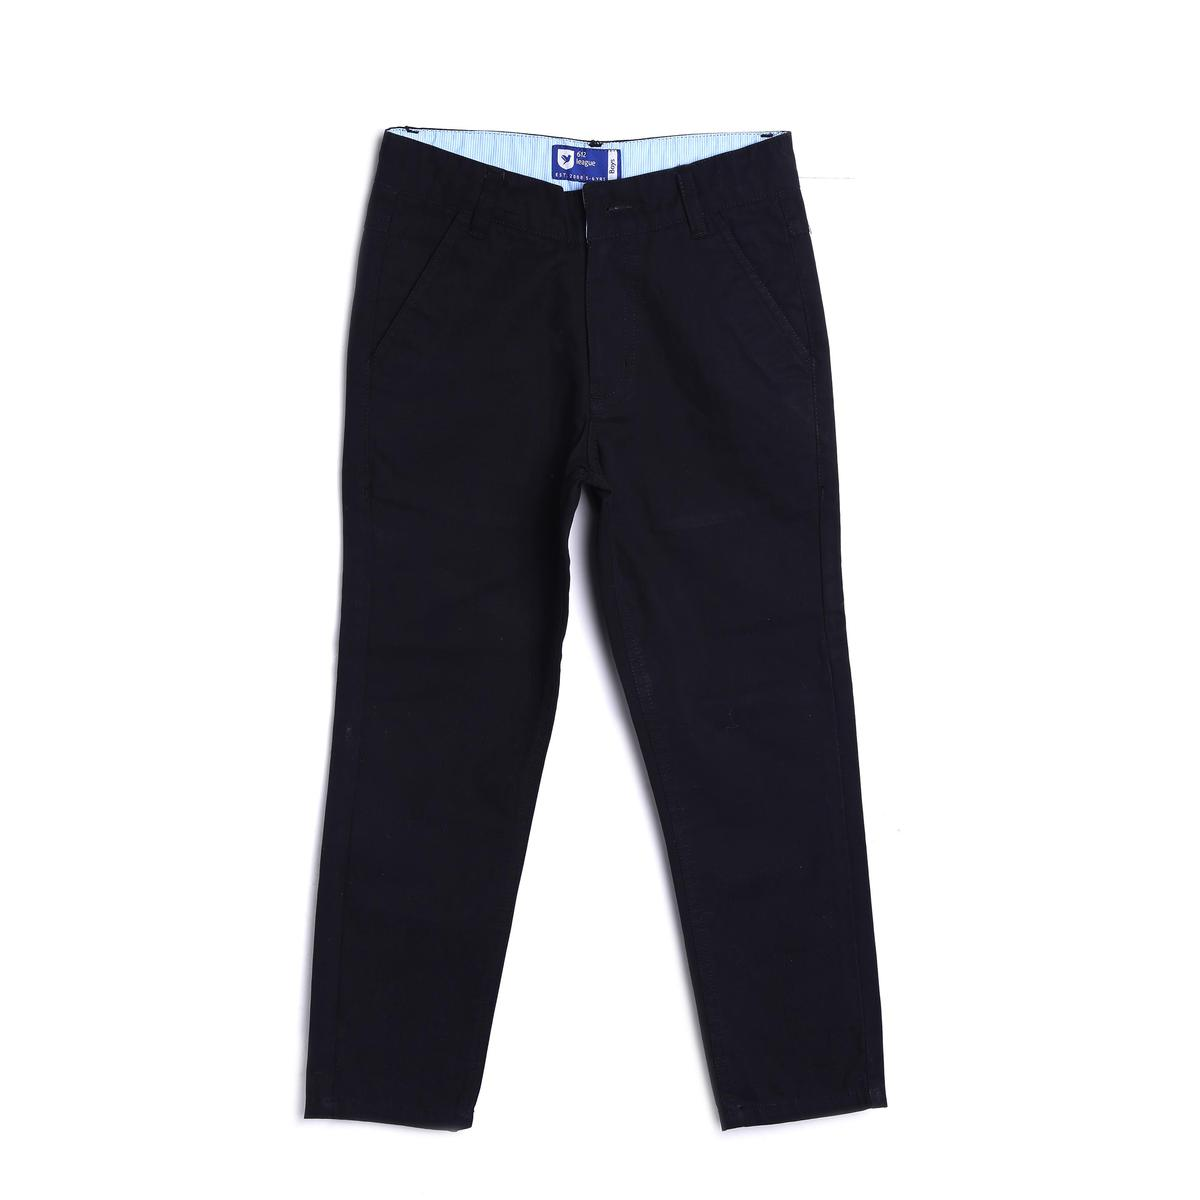 612 League - Blue Colored Basic Twill Cotton Trouser For Boys